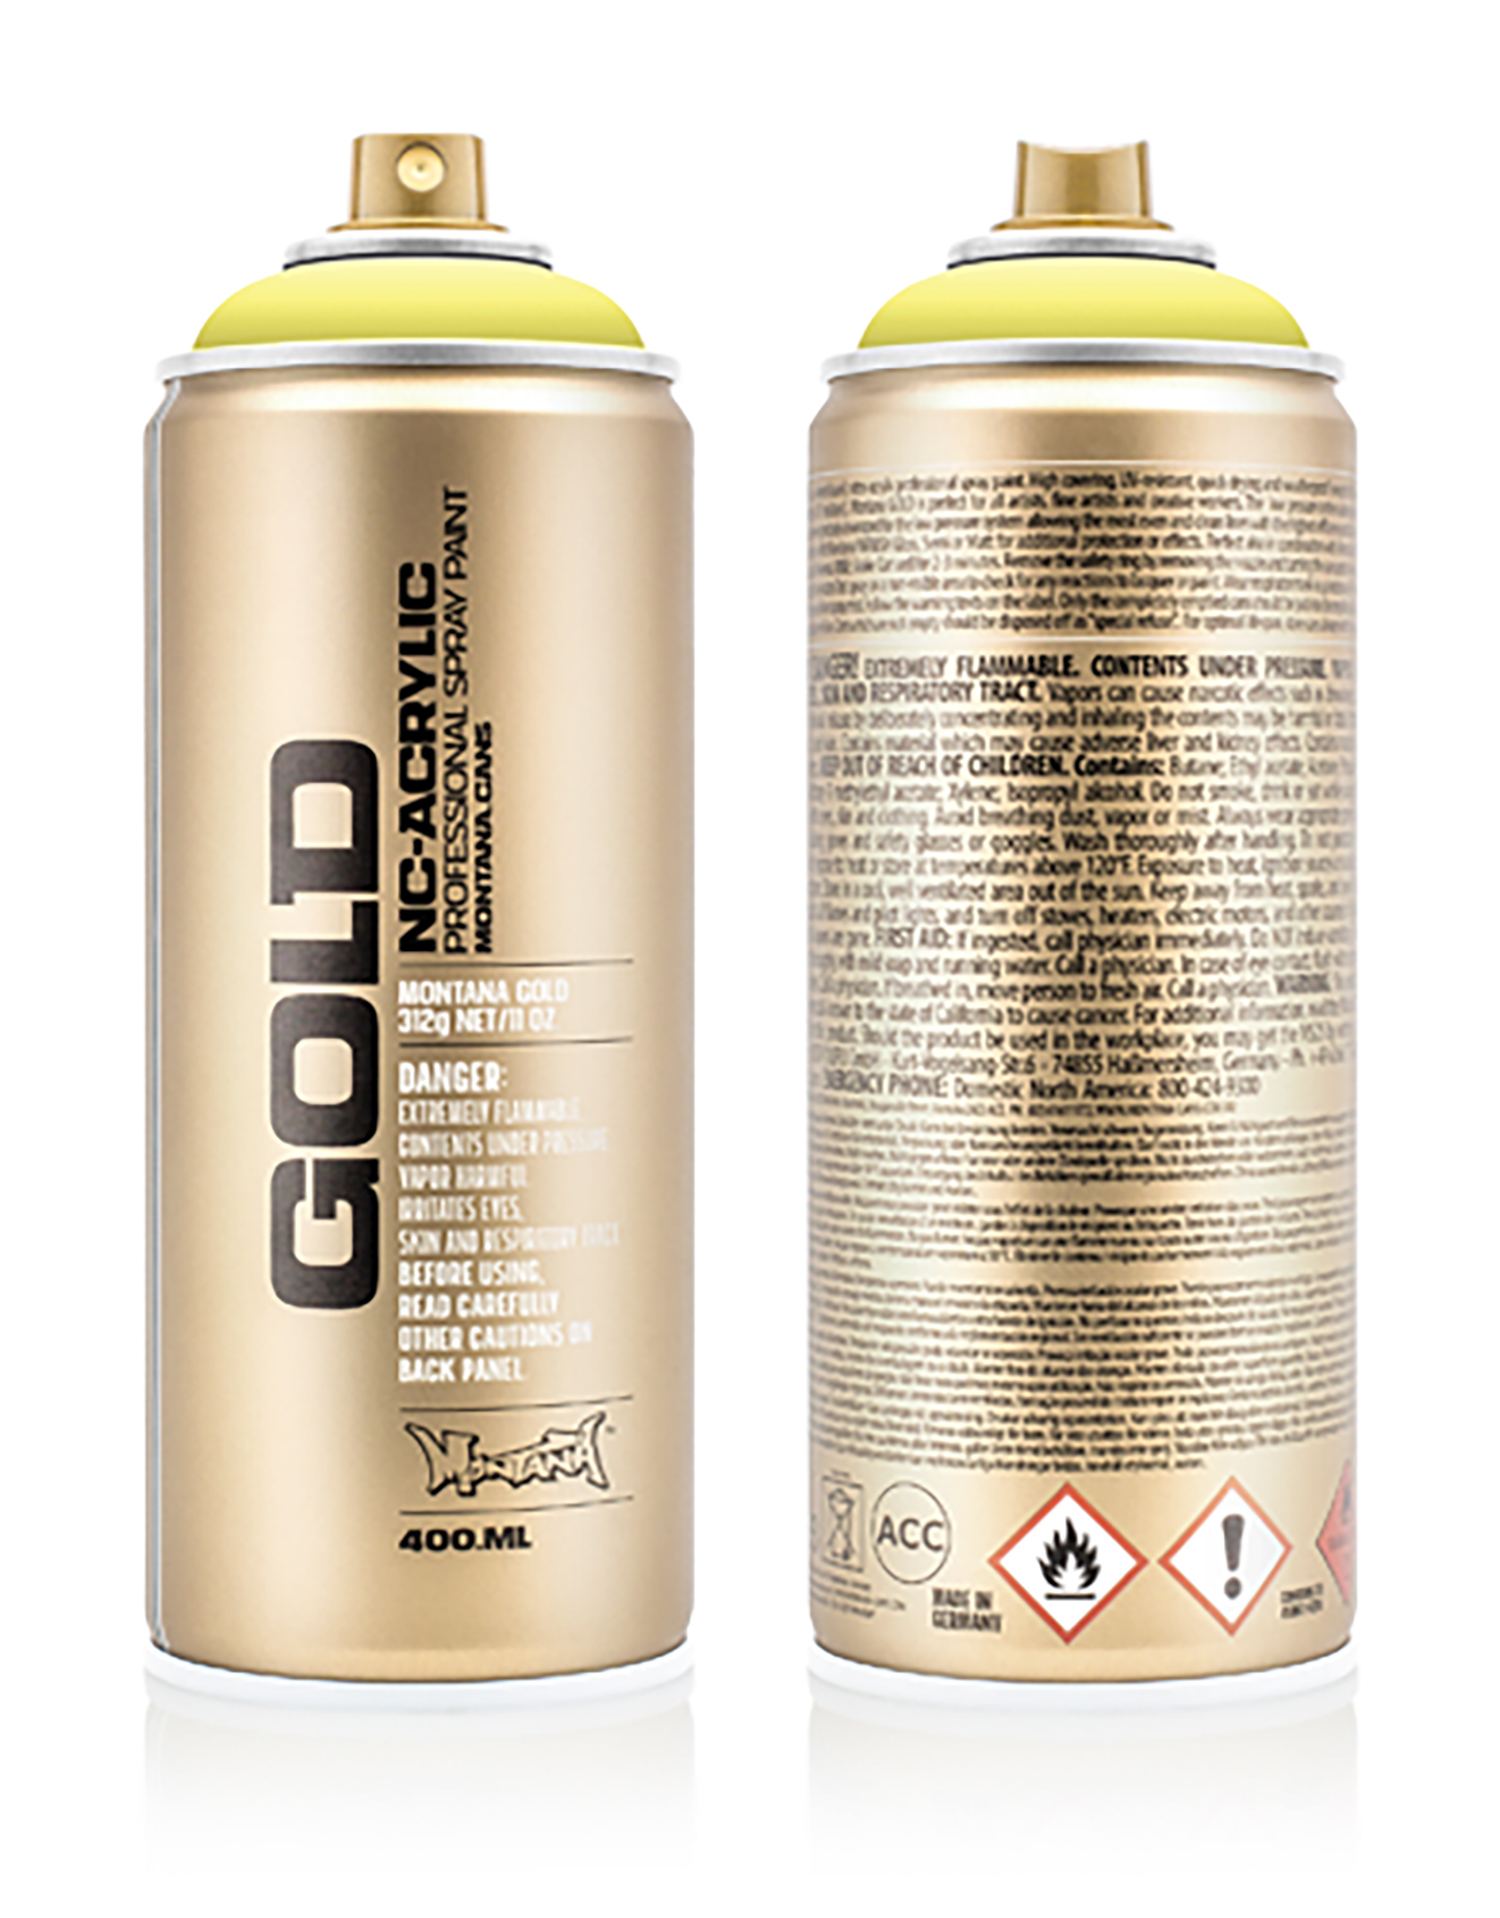 MONTANA-GOLD-SPRAY-400ML-G-1100